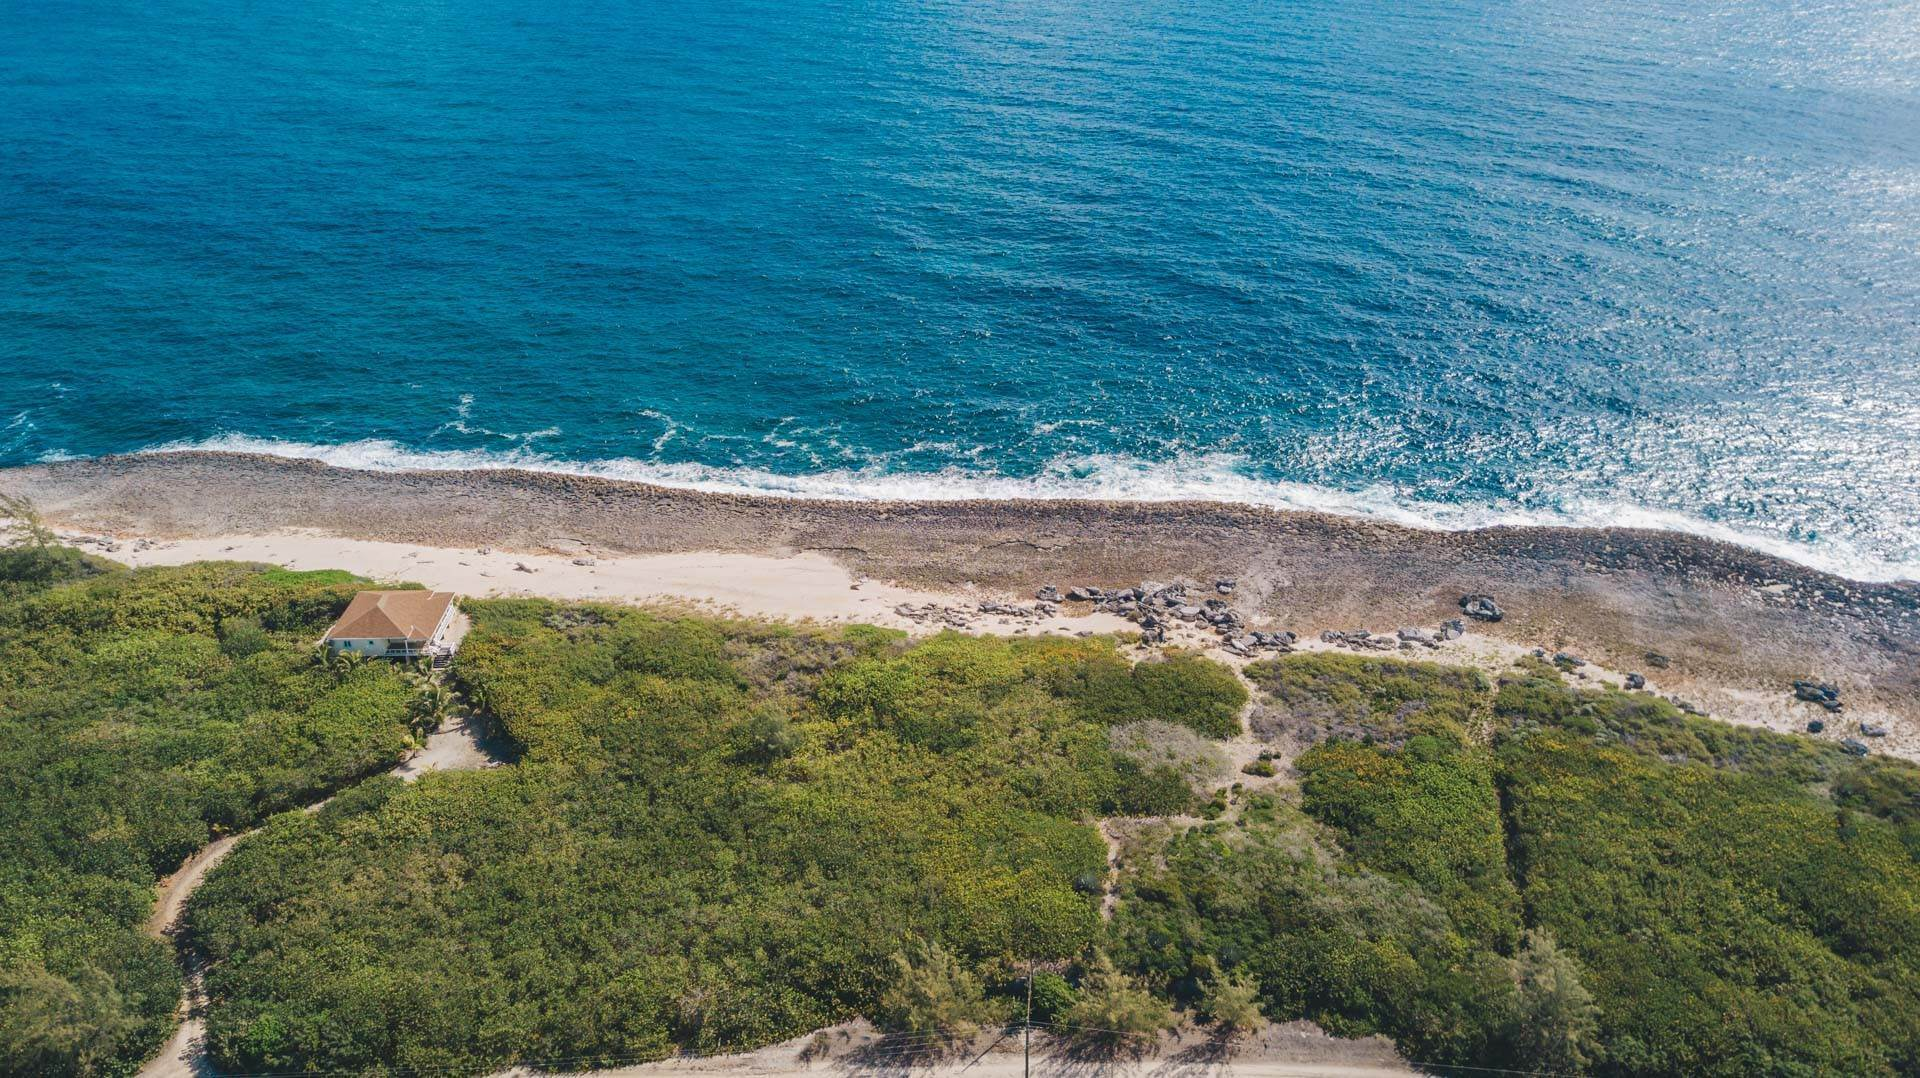 Land for Sale at Best Waterfront Deal in Whale Point!- MLS 34769 Whale Point, Eleuthera, Bahamas